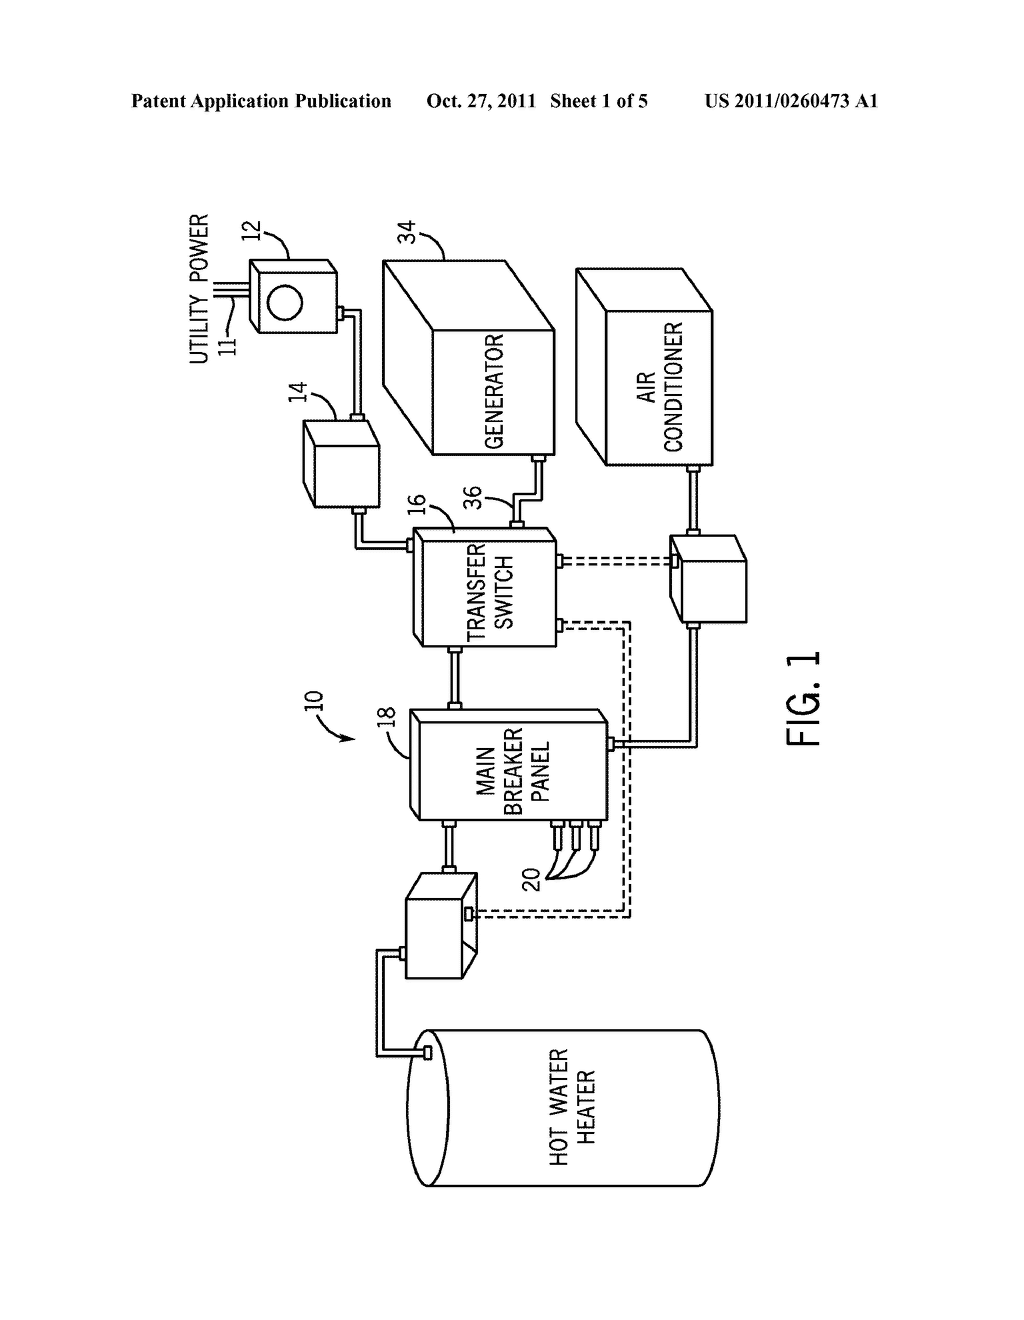 Backup Generator Diagram Wiring Libraries Method For Standby Restart After Fault Shut Down Diagrammethod